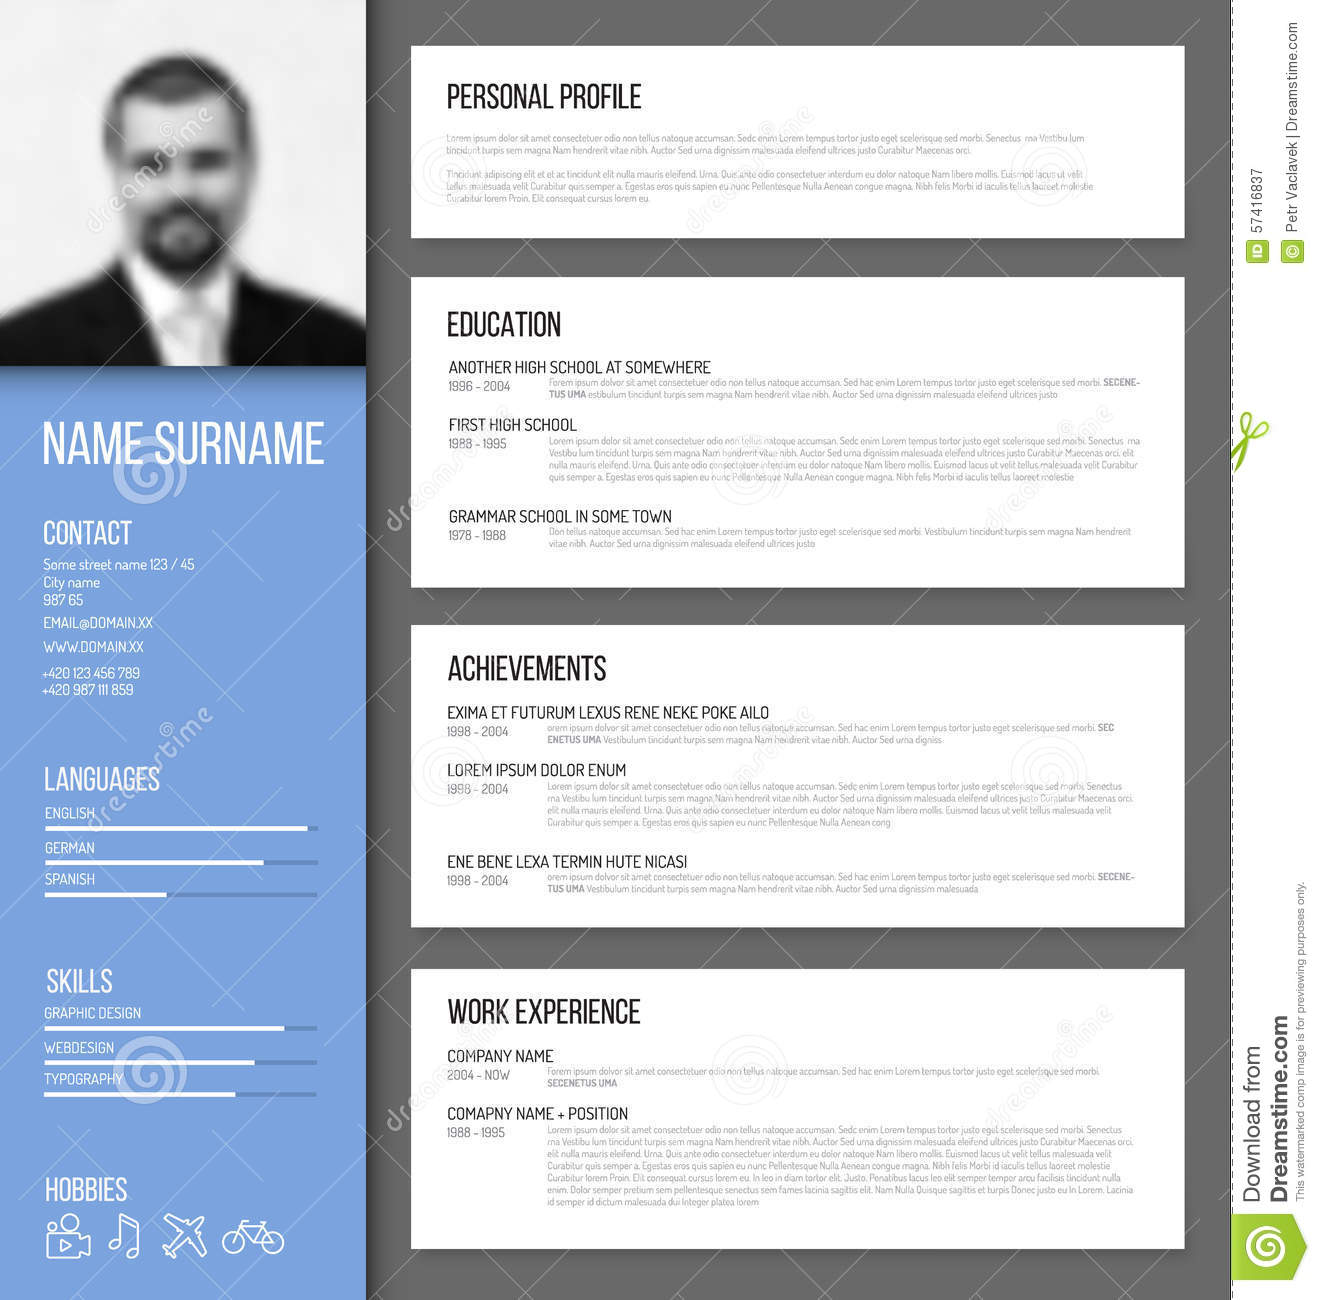 Cv Templates 61 Free Samples Examples Format Download Minimalistic Cv Resume Template Stock Vector Image